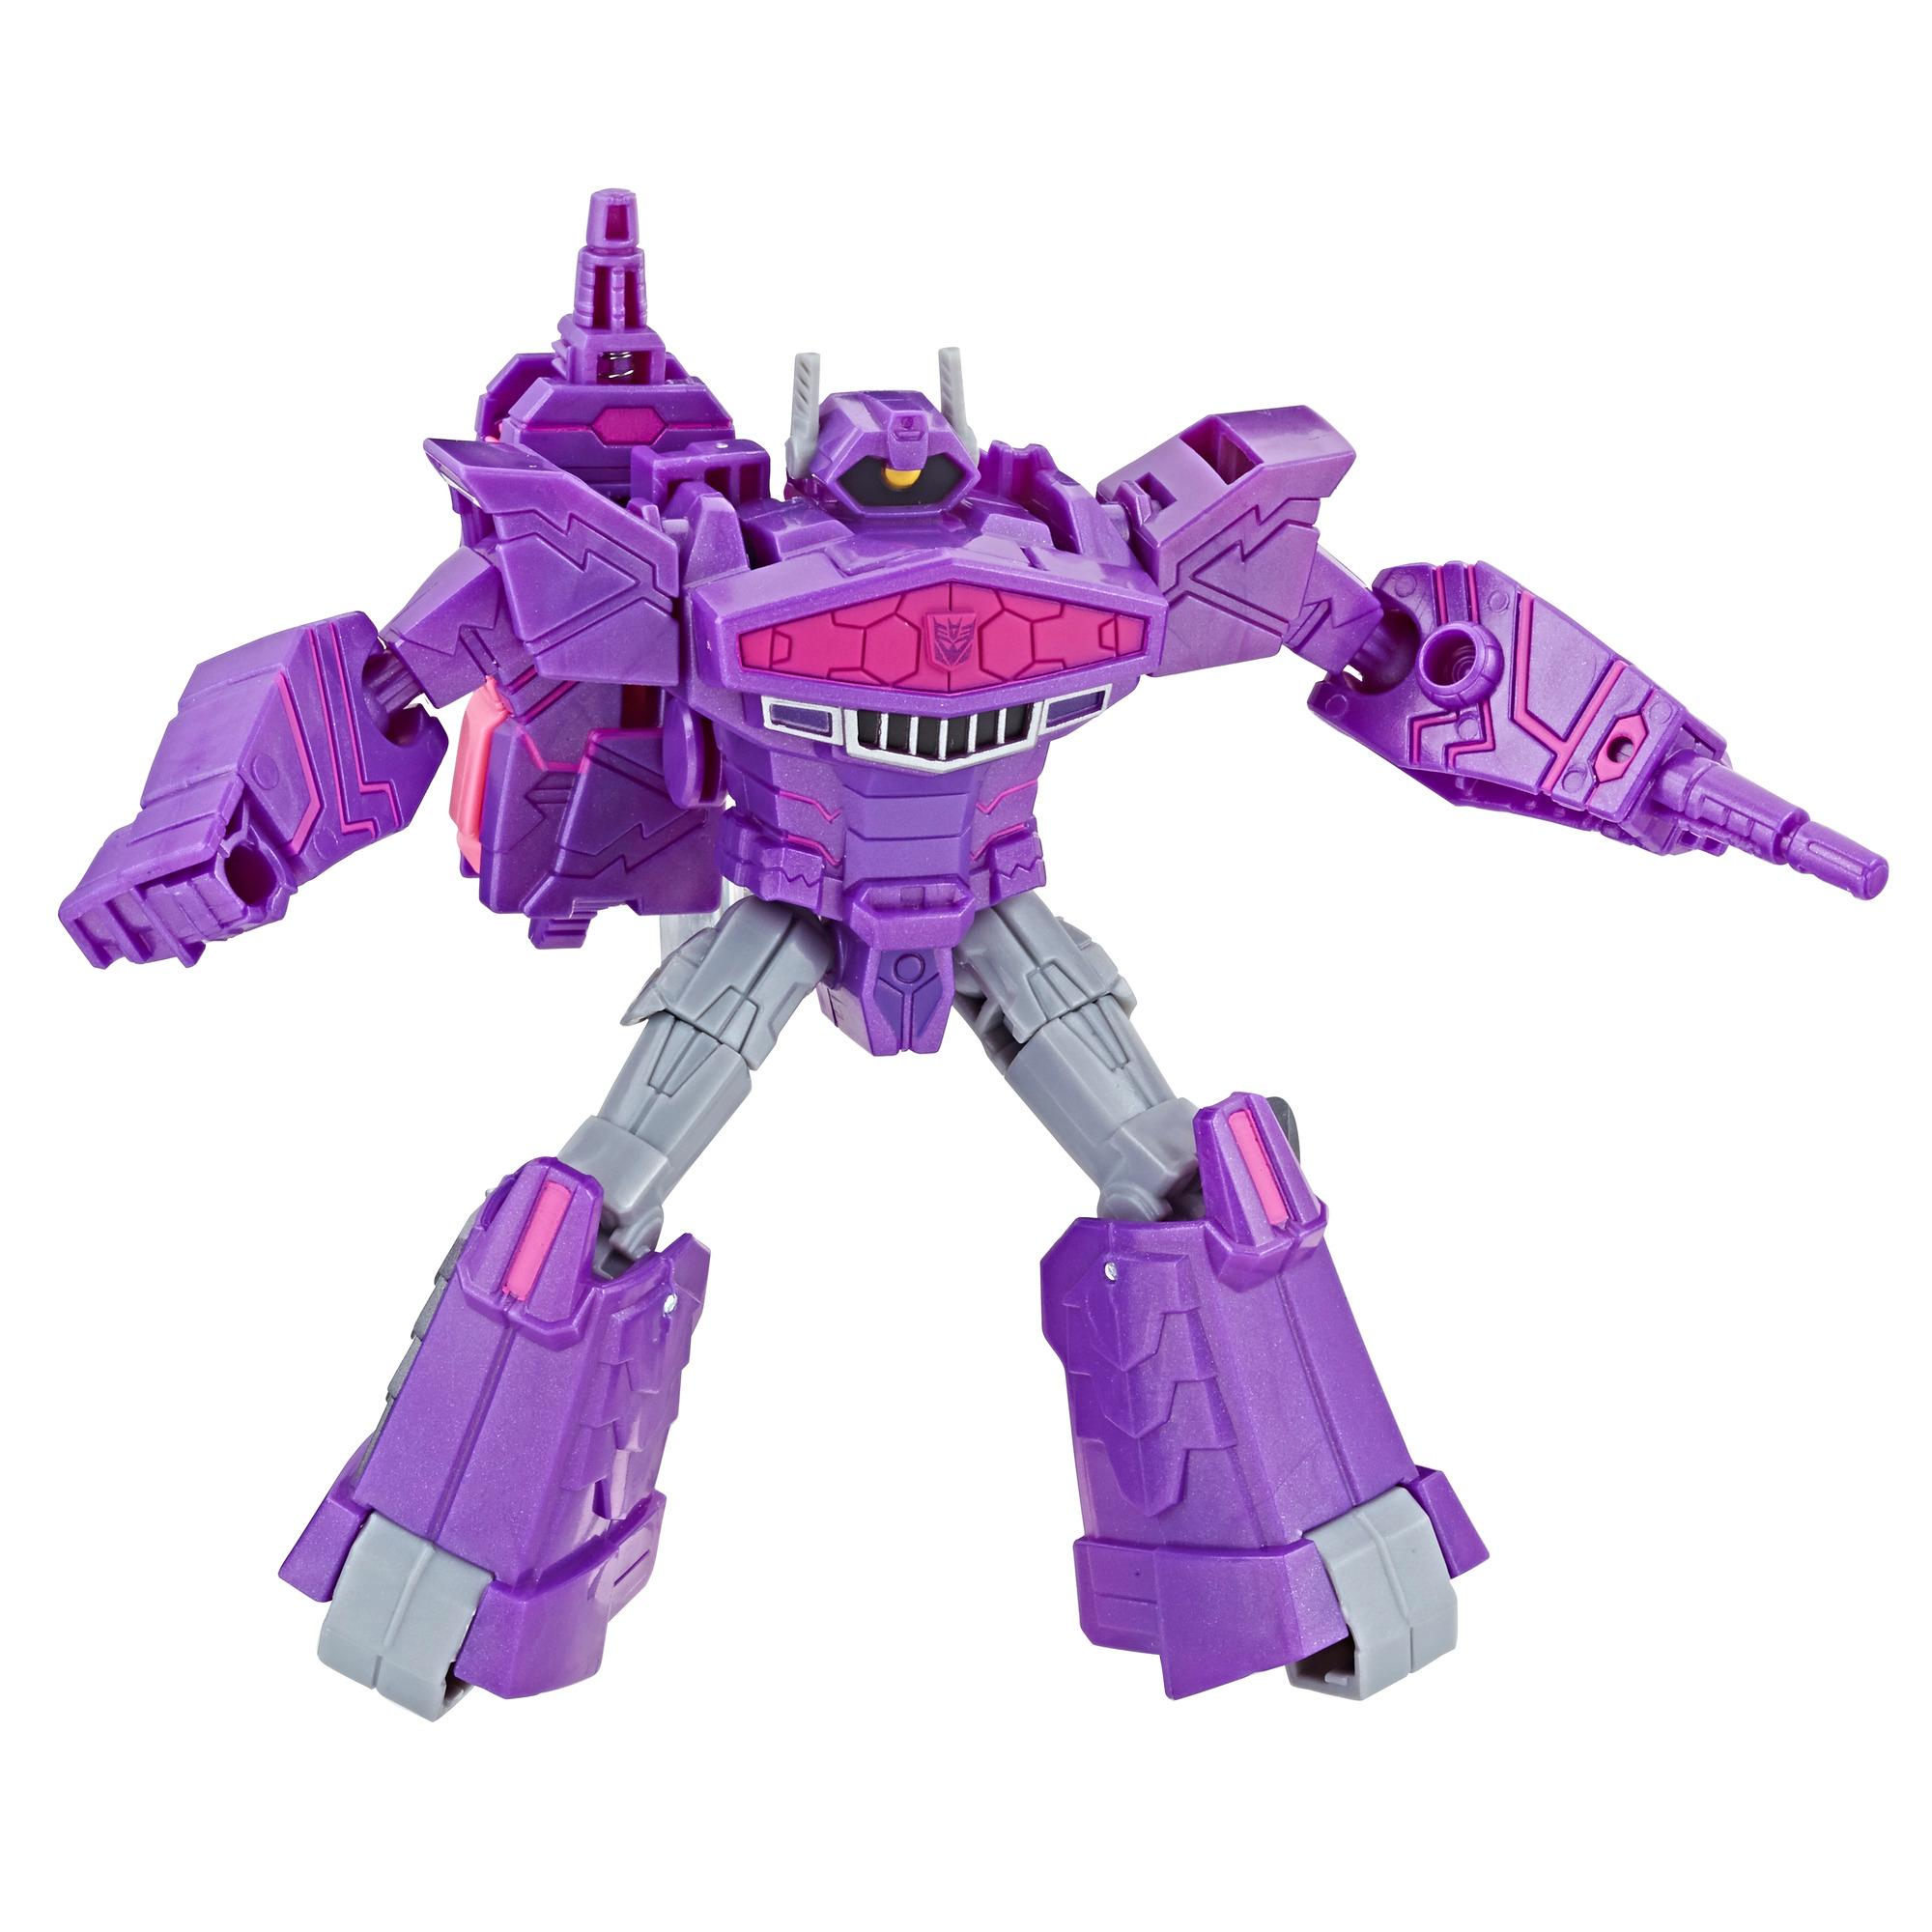 Transformers Cyberverse Figür - Decepticon Shockwave